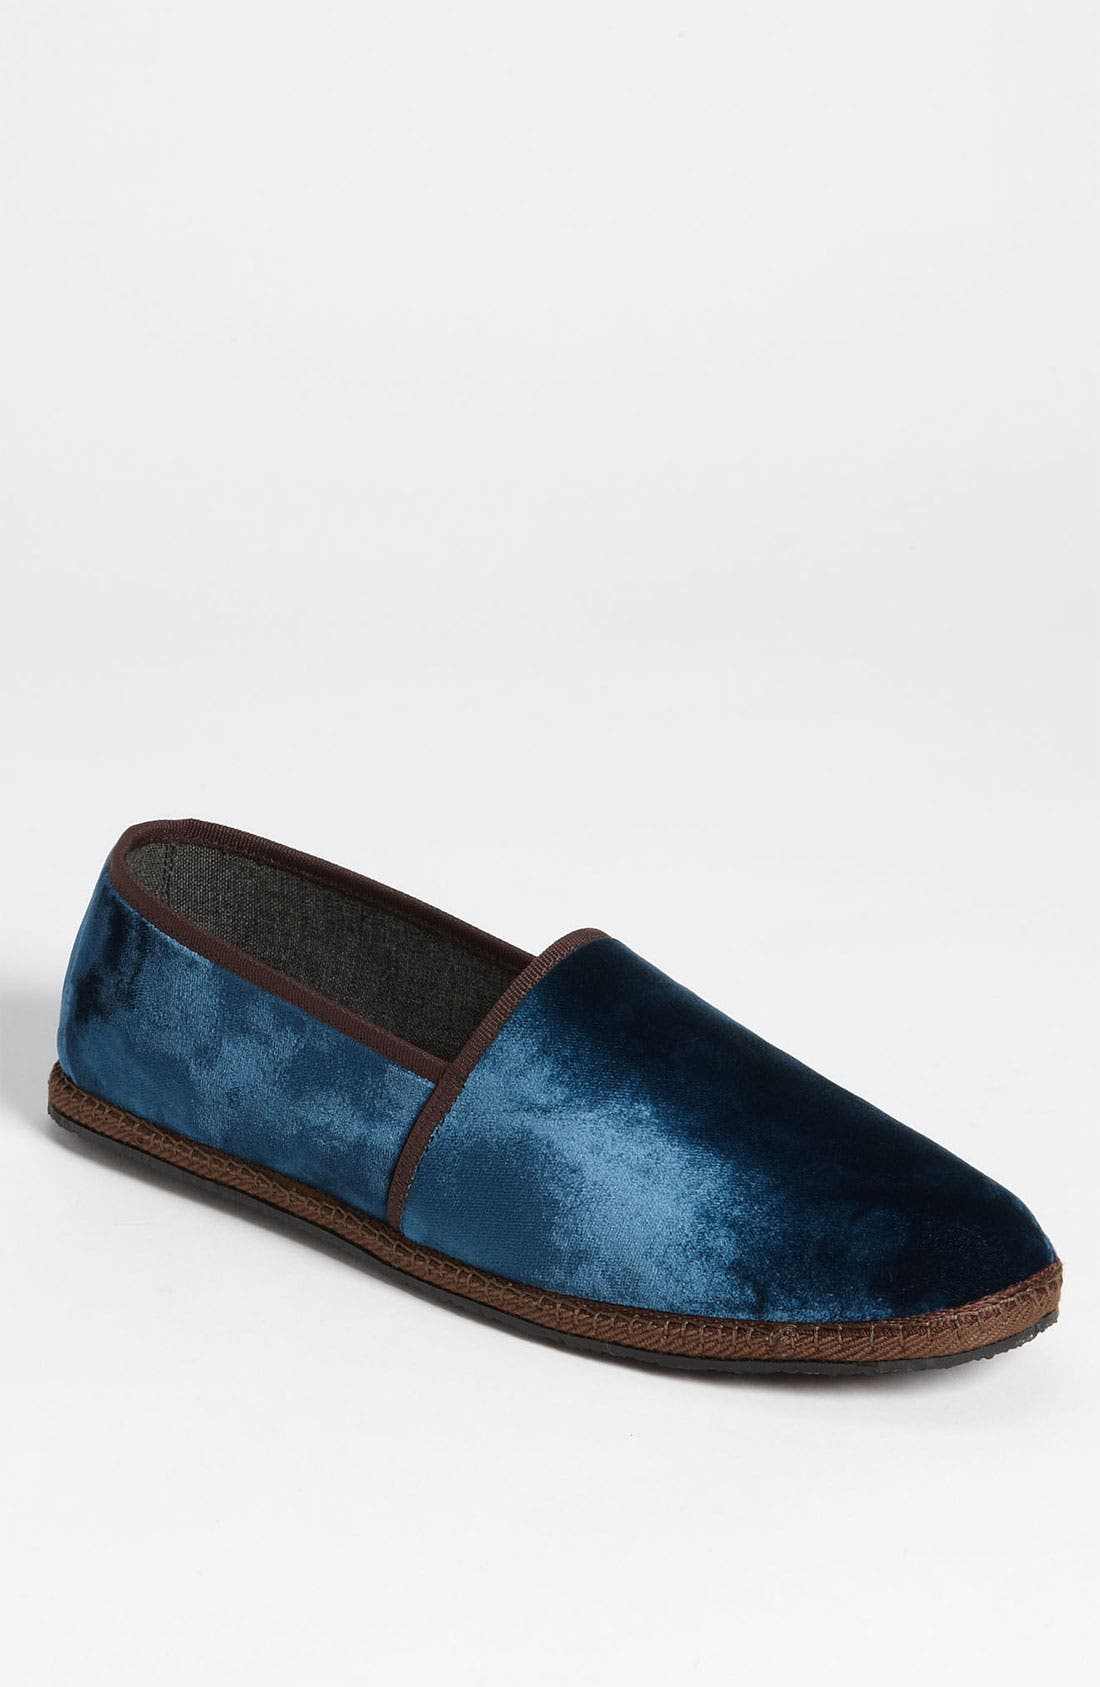 Alternate Image 1 Selected - Salvatore Ferragamo 'Adone' Velvet Slip On